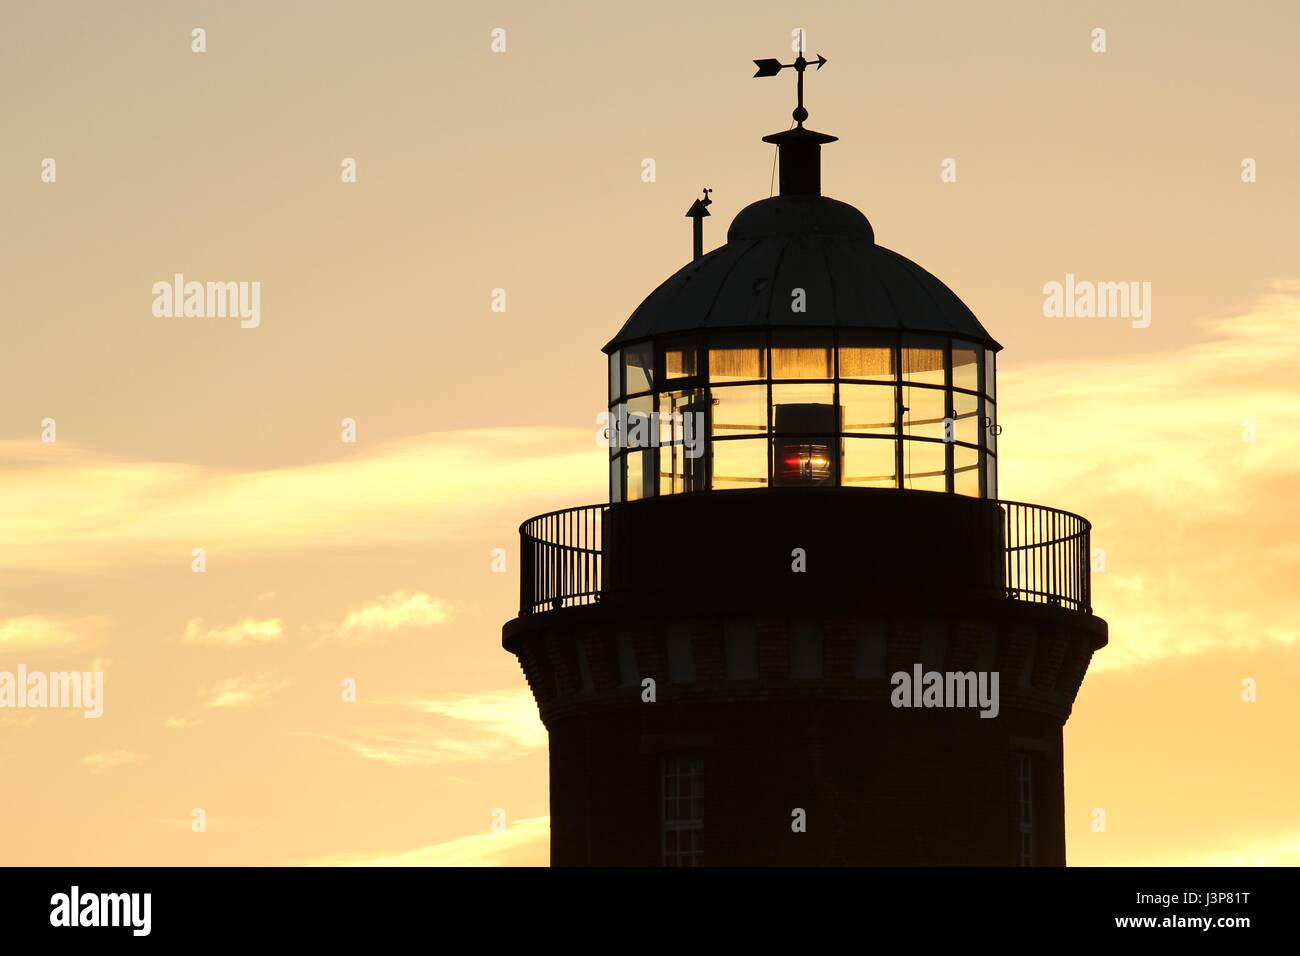 lighthouse of Cuxhaven/ Germany - Stock Image